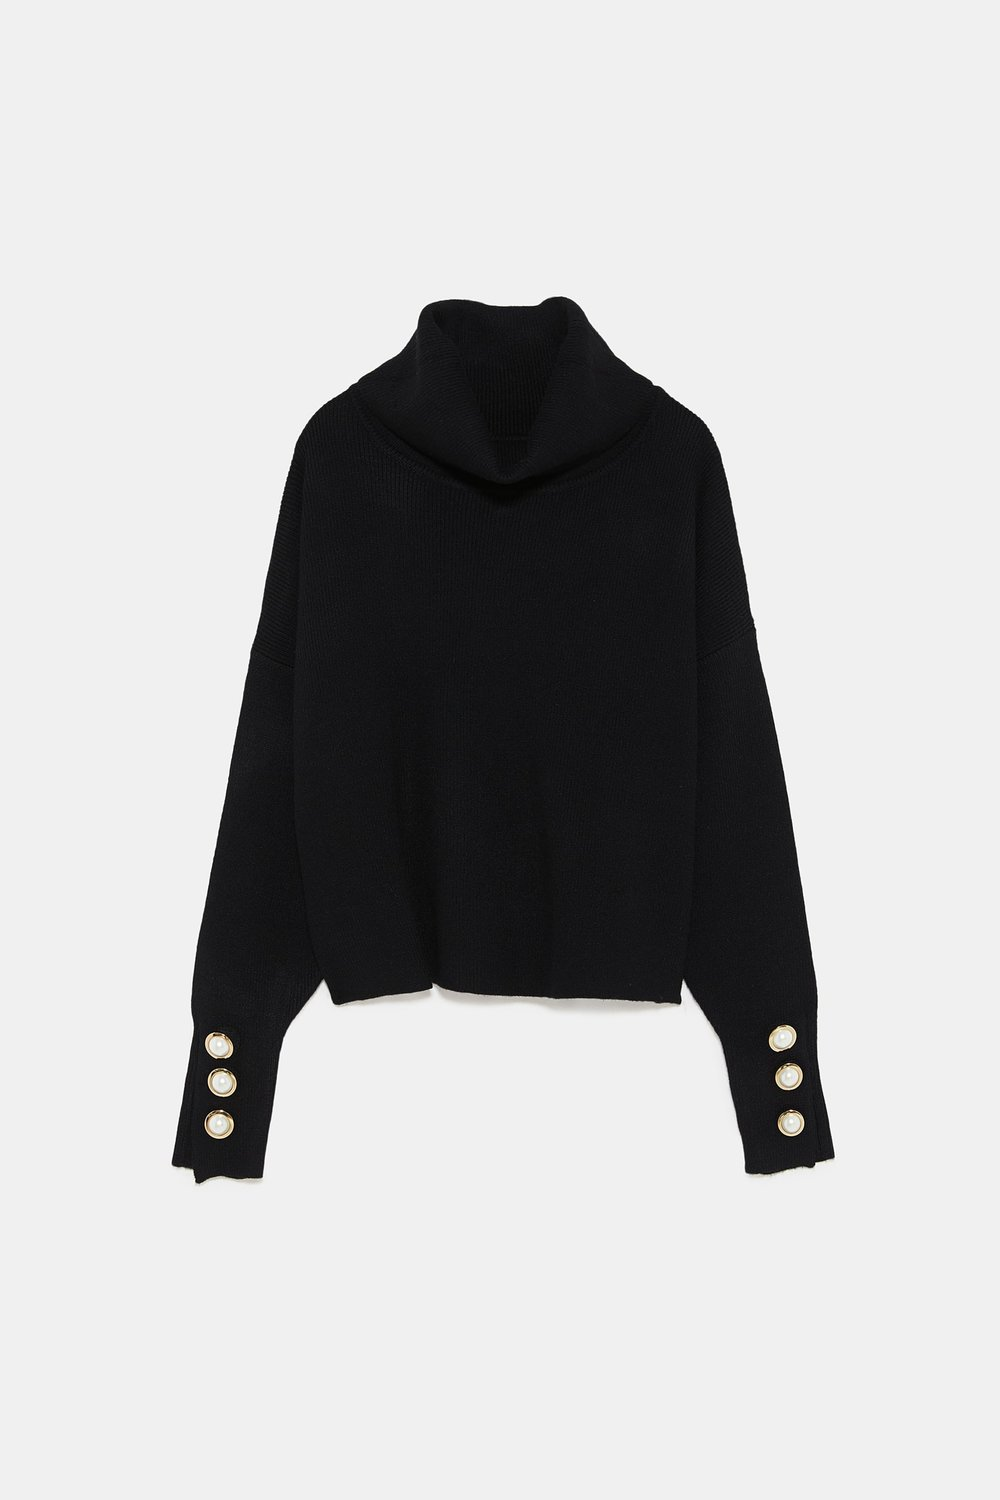 https://www.zara.com/ca/en/sweater-with-faux-pearls-at-cuffs-p05536119.html?v1=6835525&v2=1074618